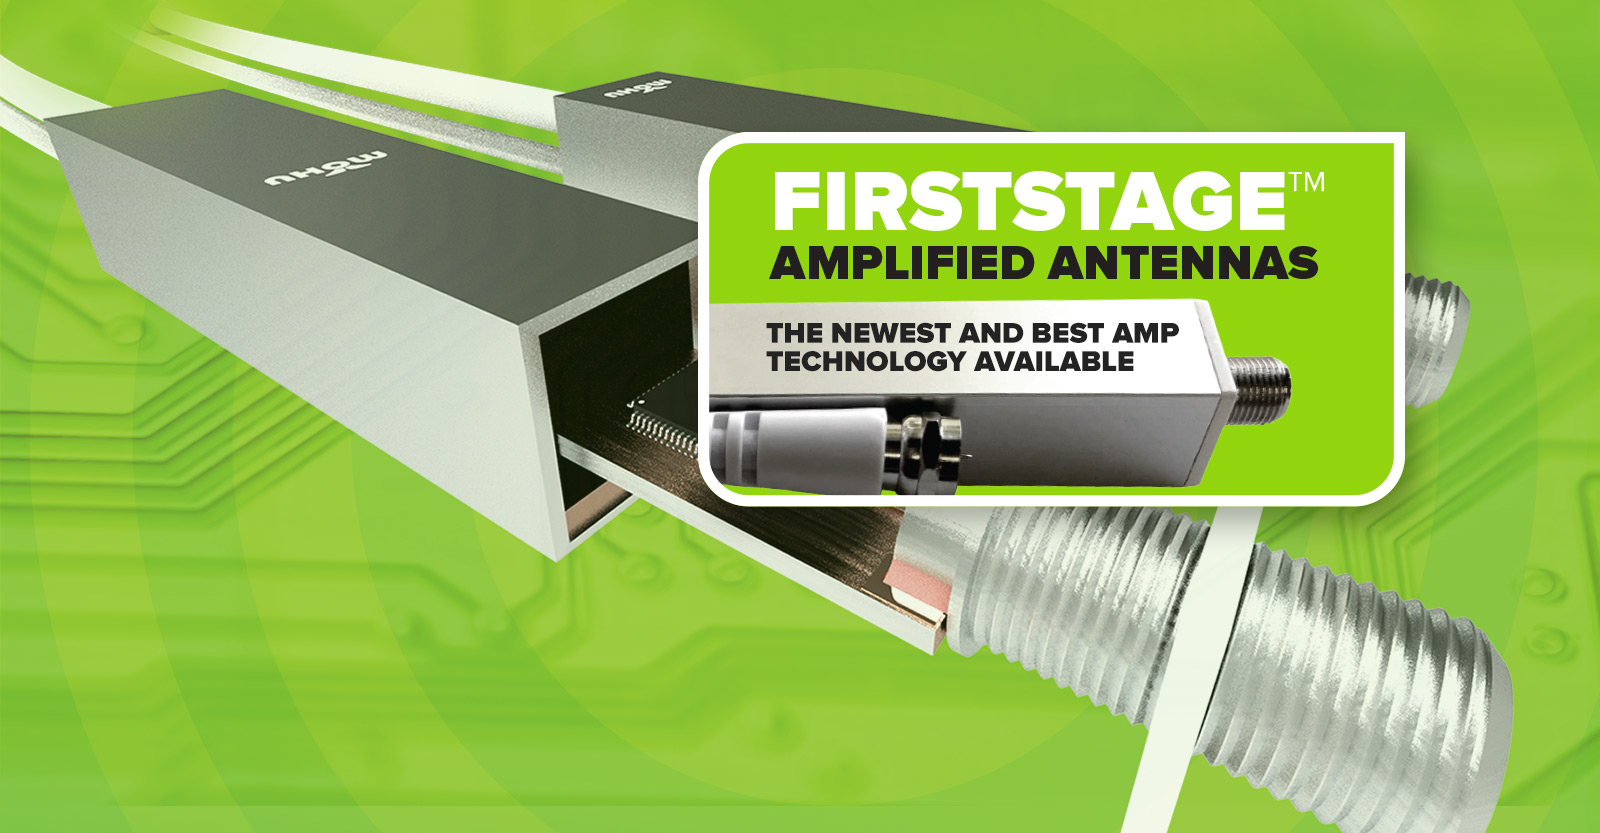 Firststage amplified antennas